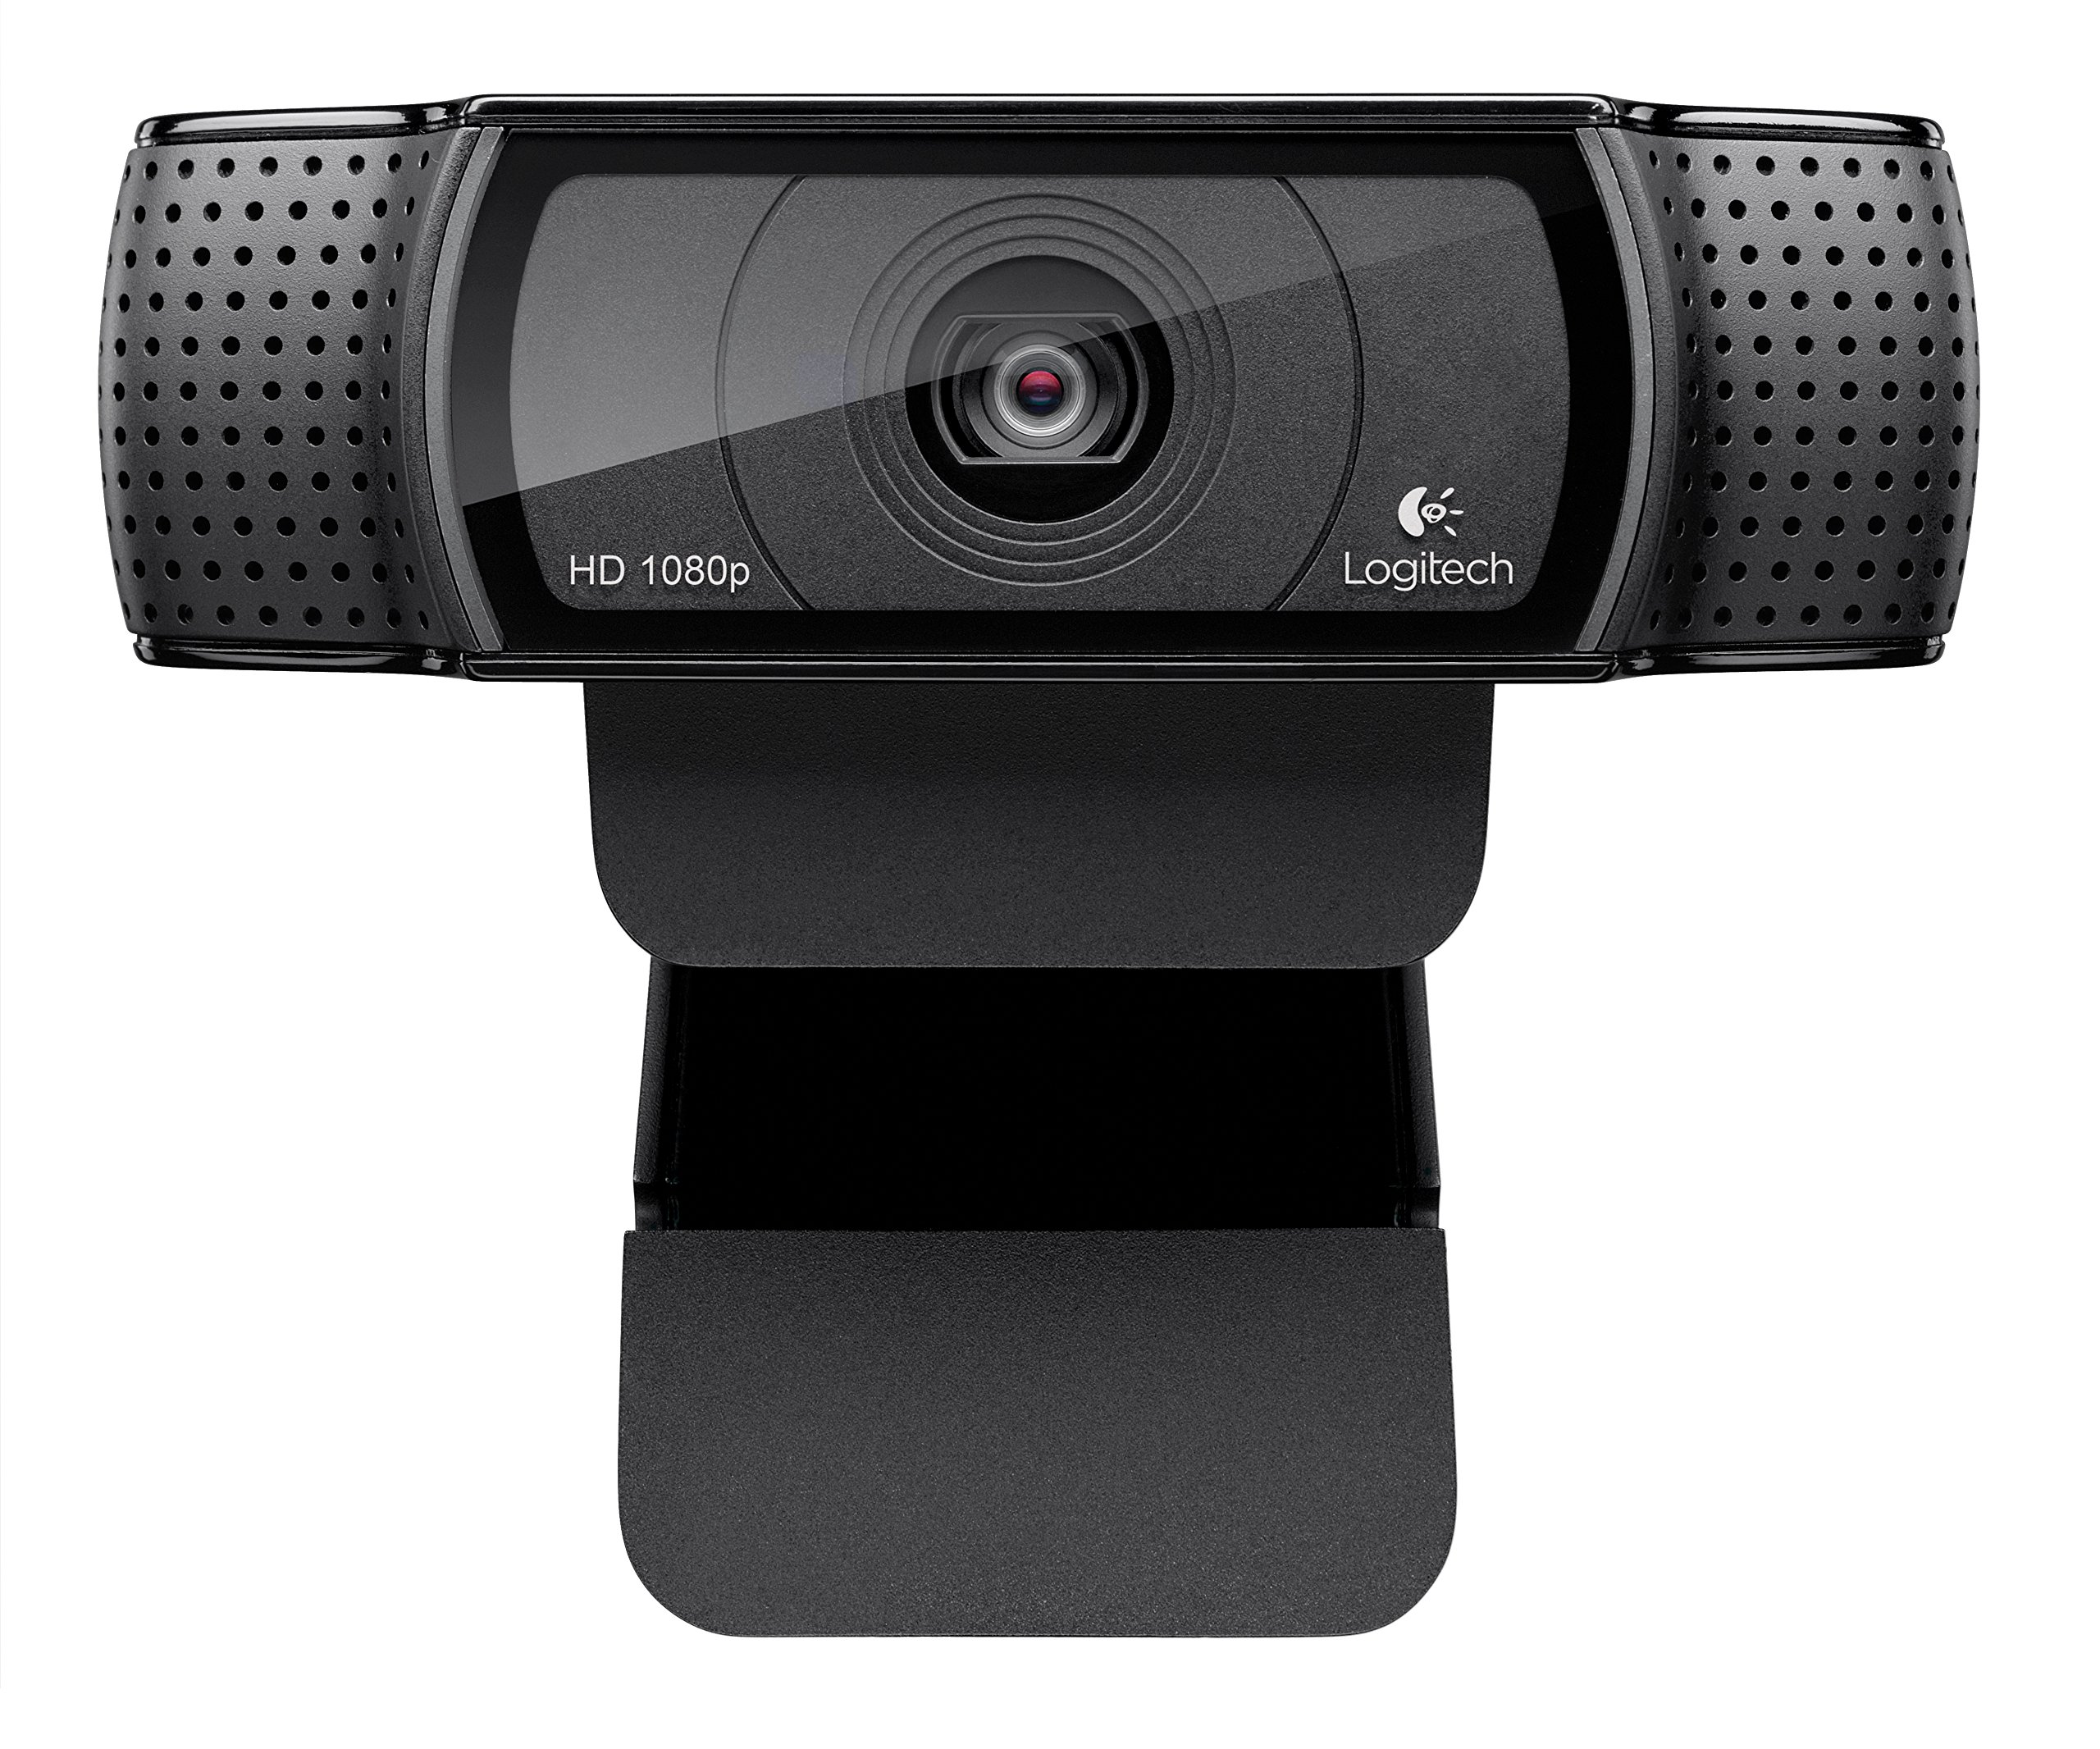 Logitech HD Pro Webcam C920, Widescreen Video Calling and Recording, 1080p Camera, Desktop or Laptop Webcam by Logitech